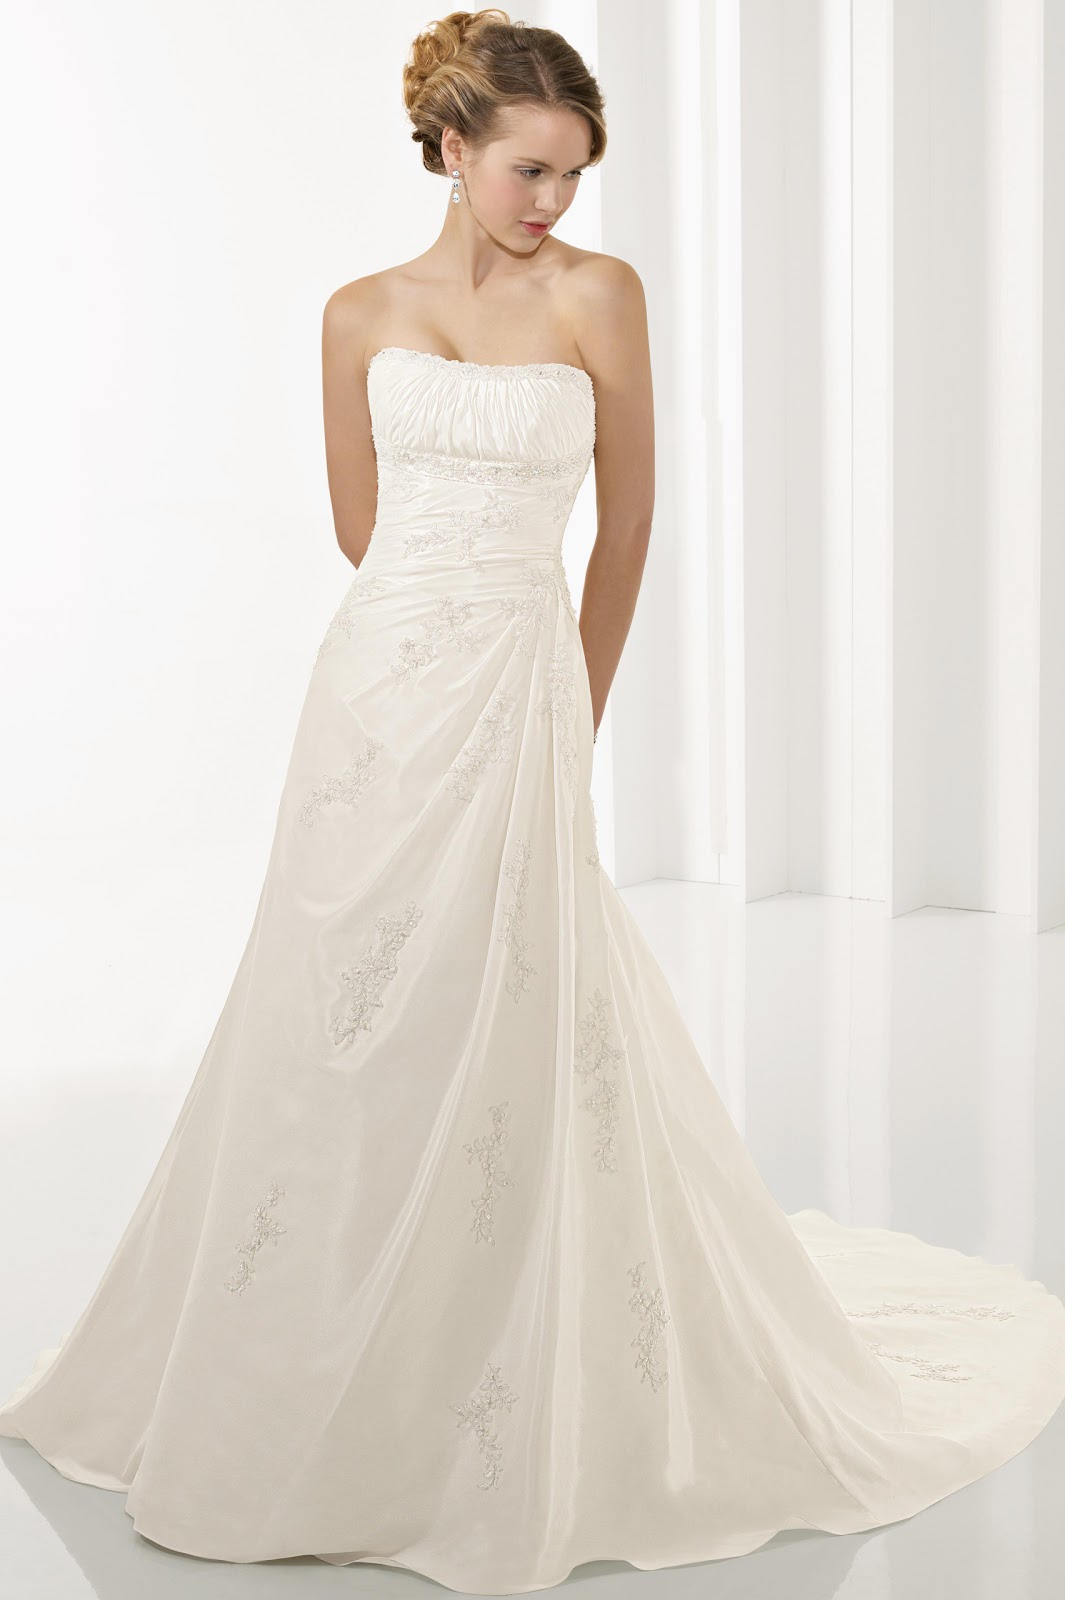 Wedding dresses styles guide wedding dresses in jax for Wedding dresses stores in miami